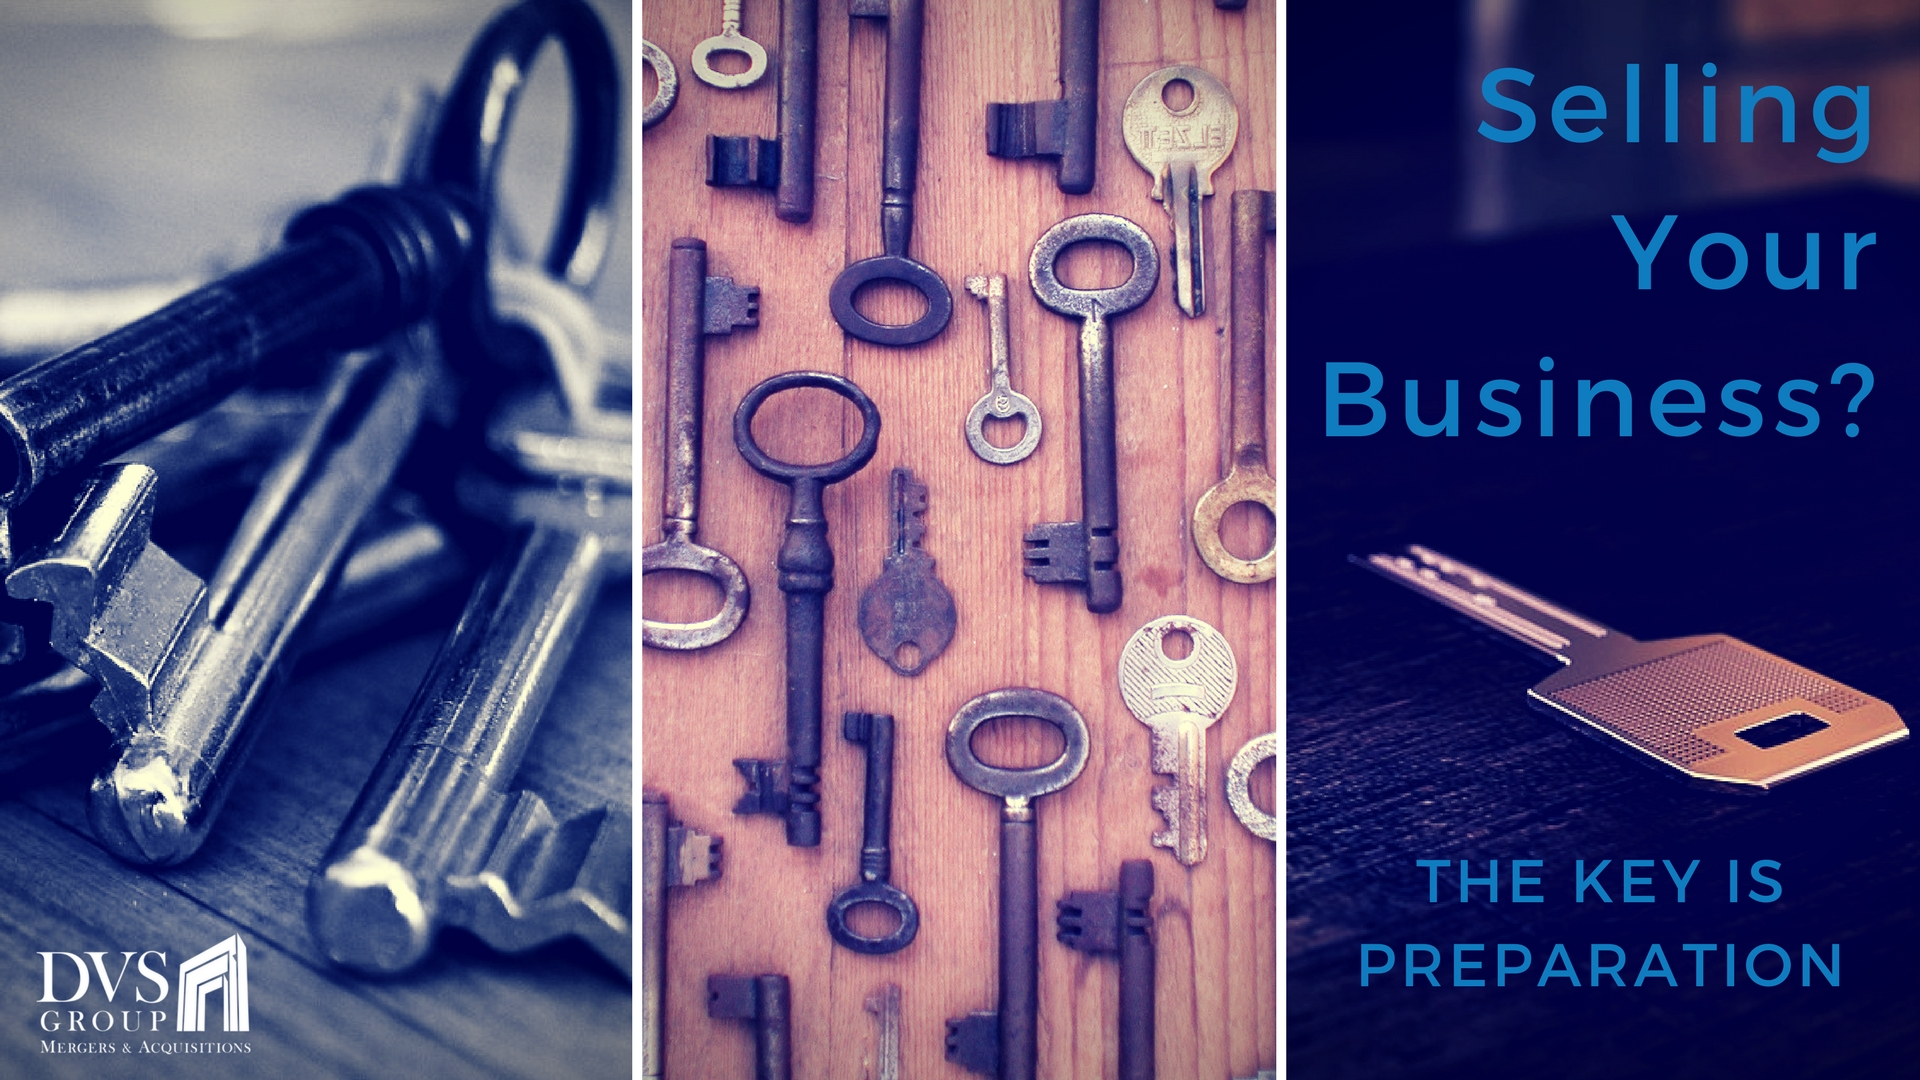 Selling Your Business? The Key is Preparation